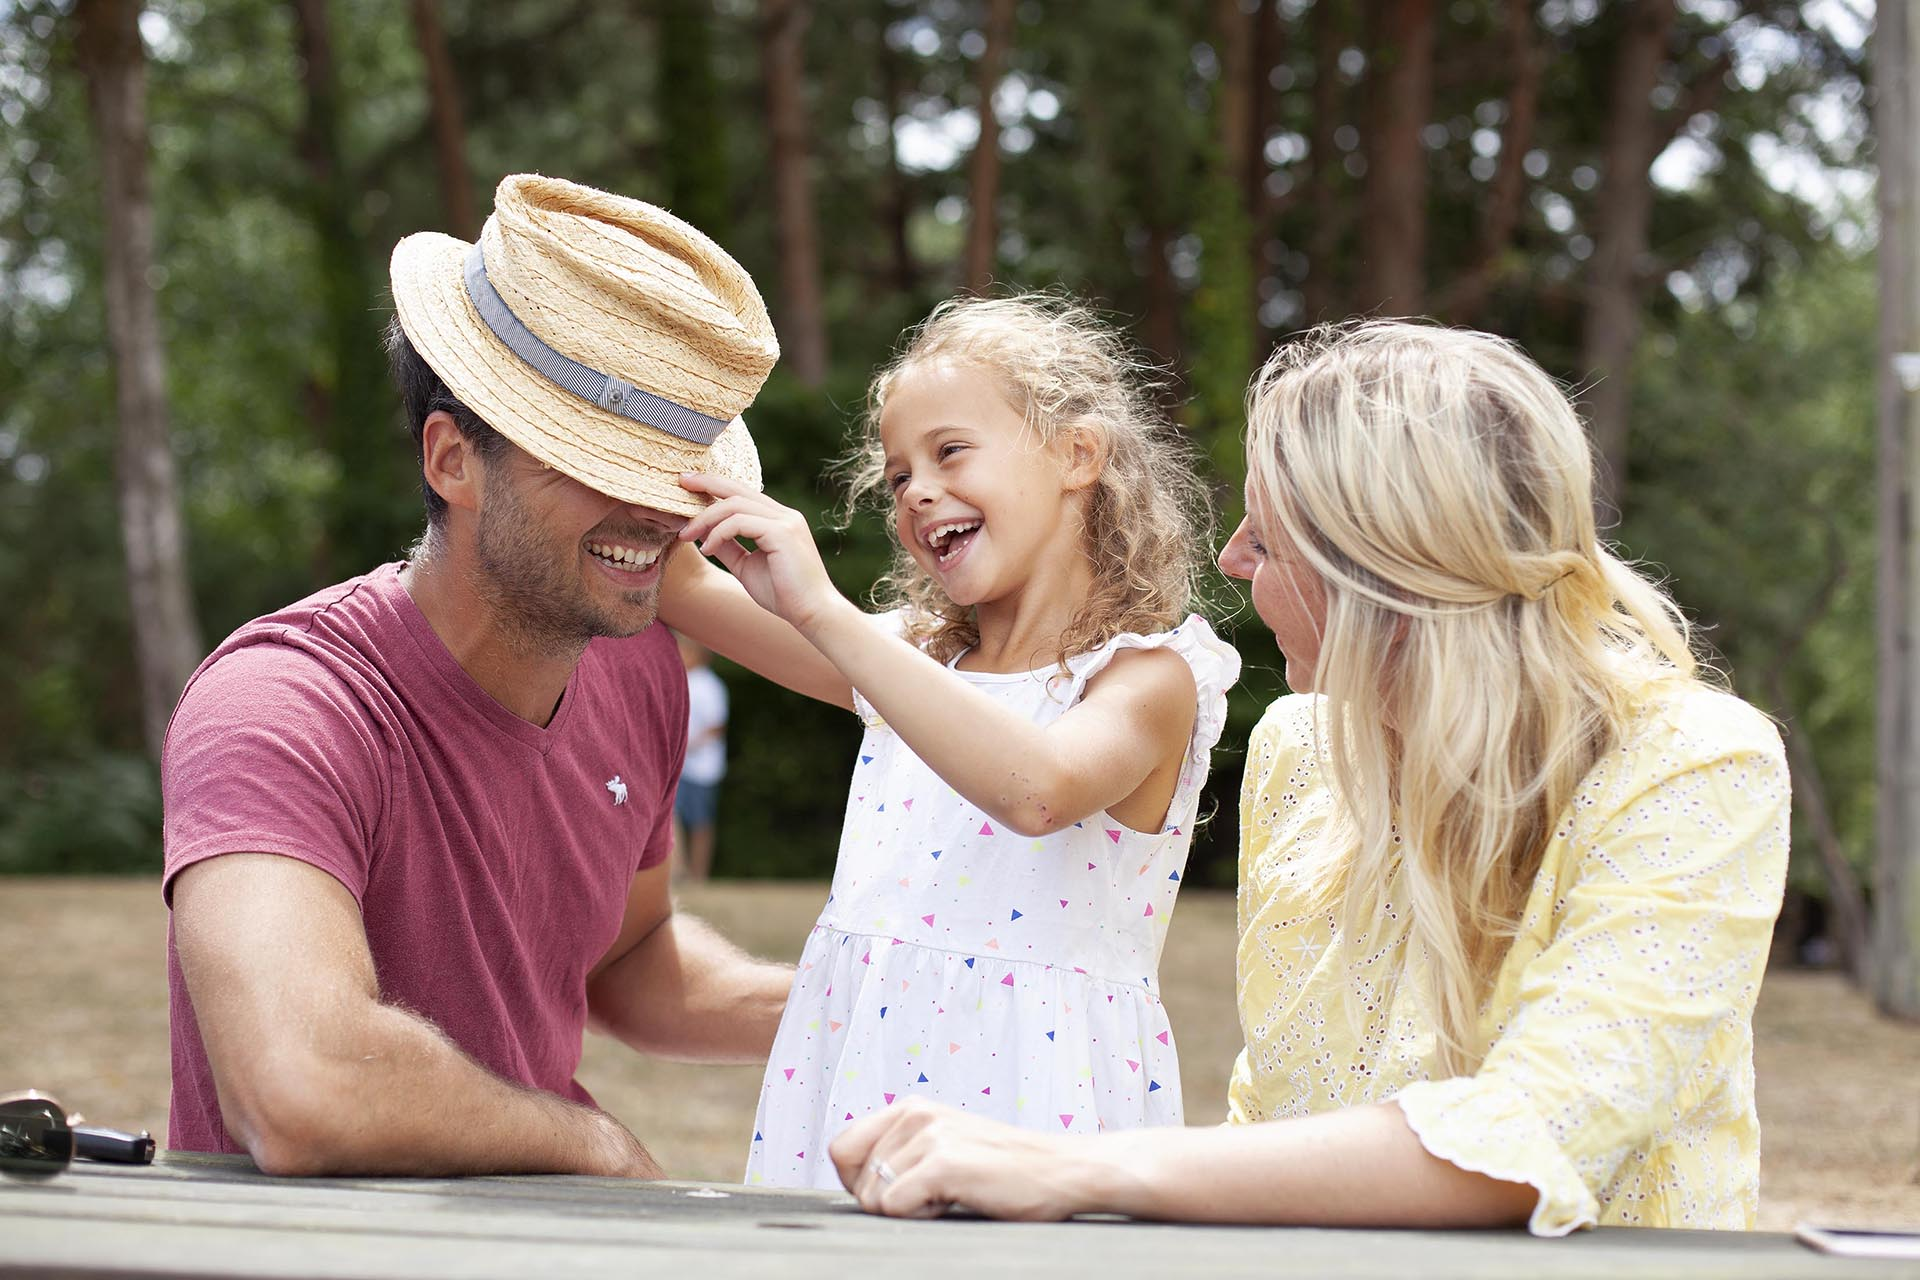 Daughter tilts dad's hat over his eyes as mum laughs